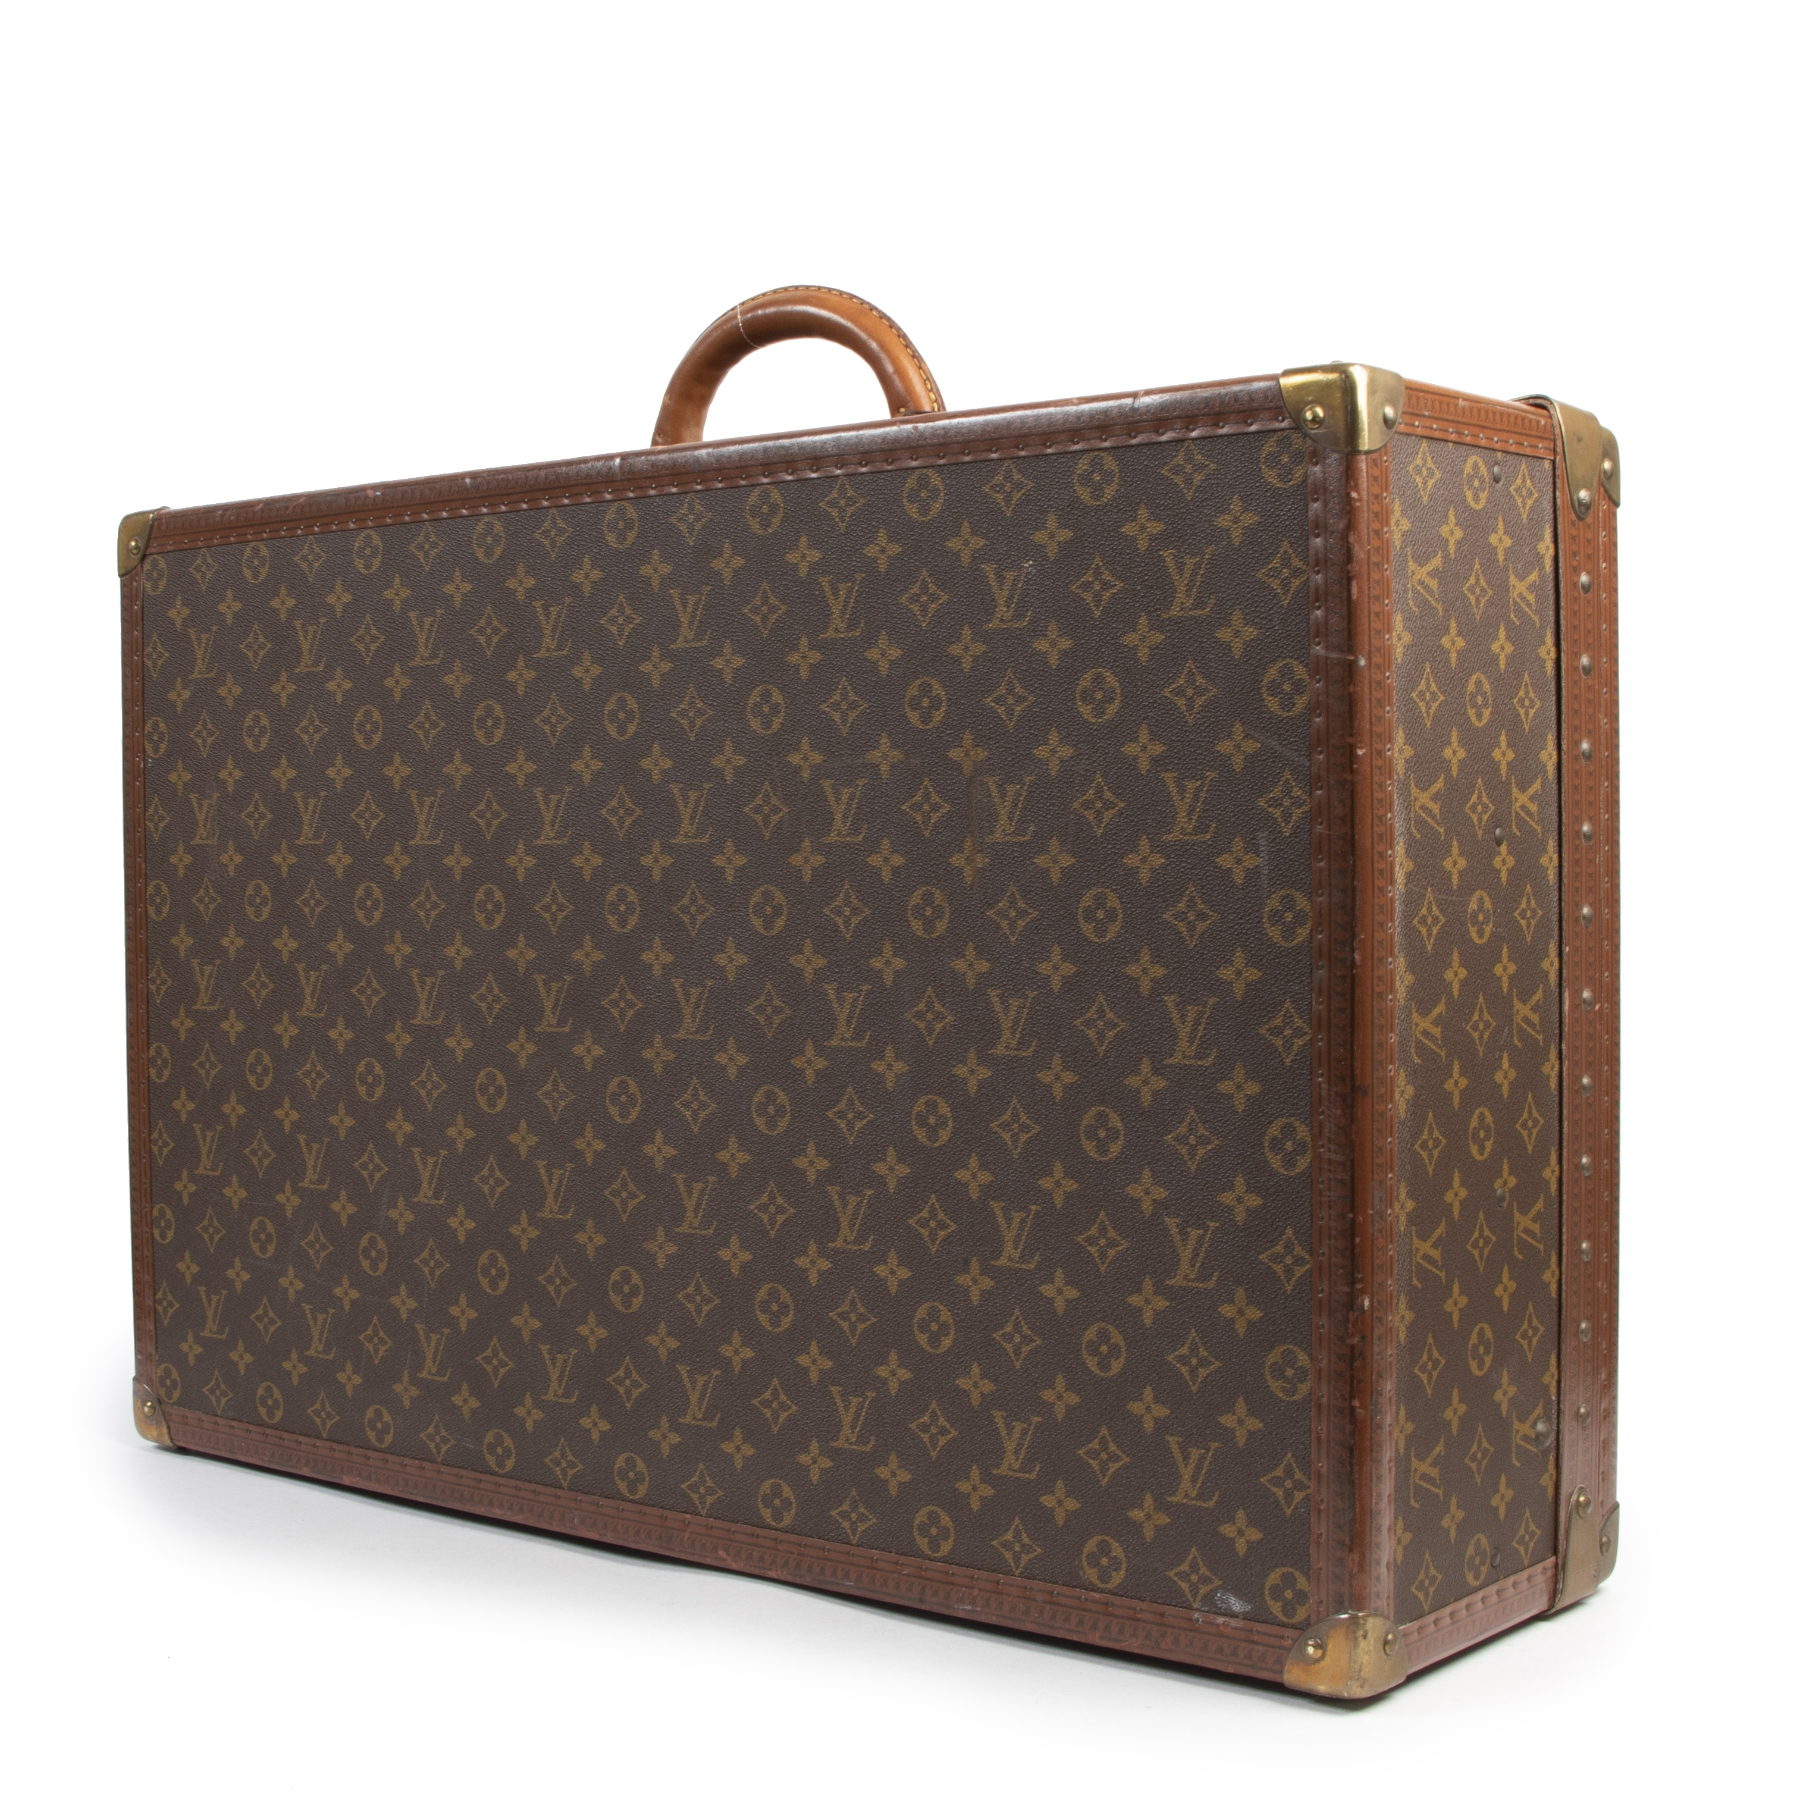 Authentic second-hand vintage Louis Vuitton Alzer 80 Suitcase buy online webshop LabelLOV